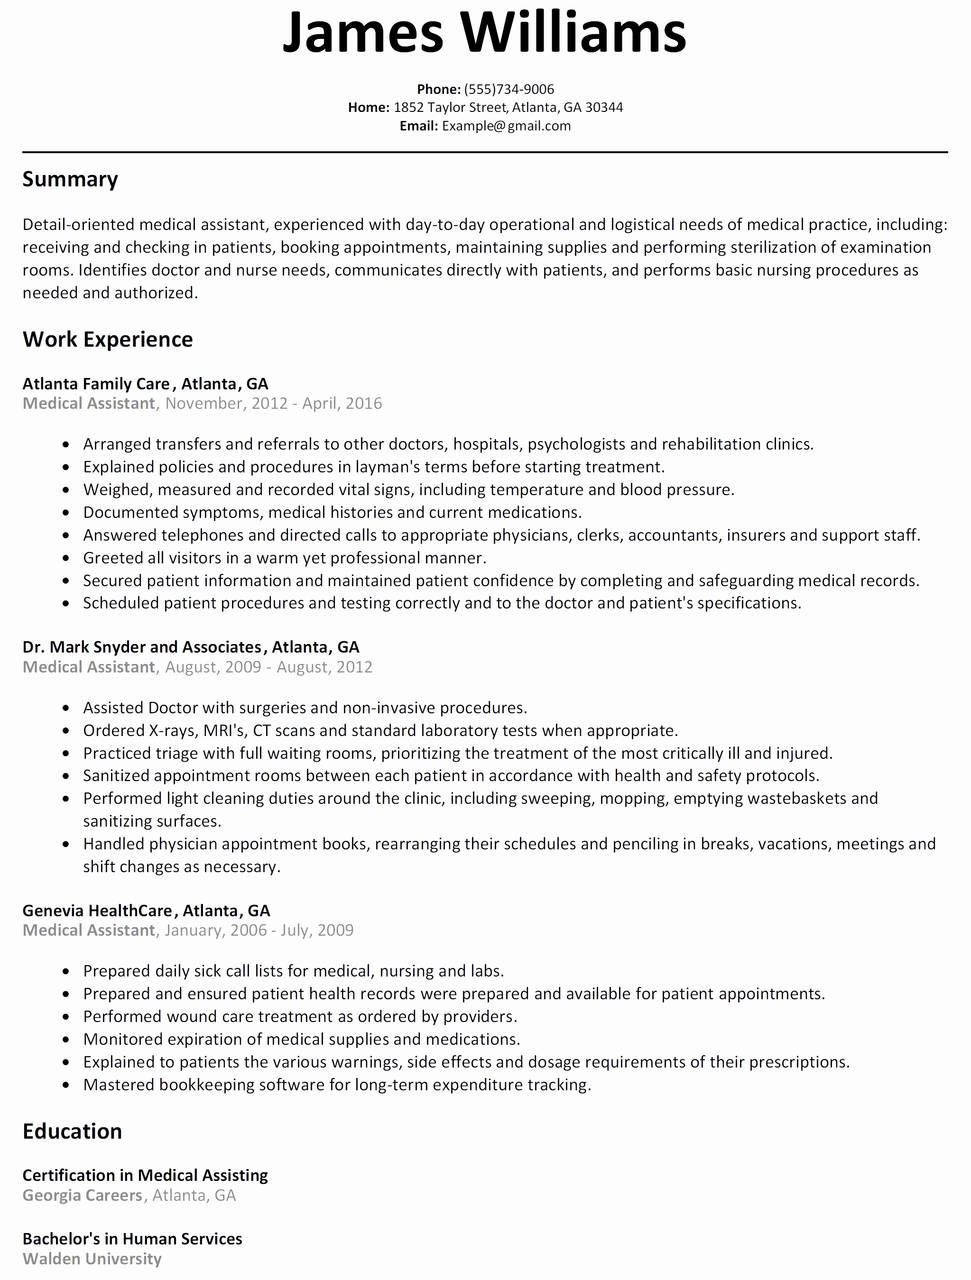 Basic Resume Template Word - Resume Template Word Download New Free Resume Templates Downloads